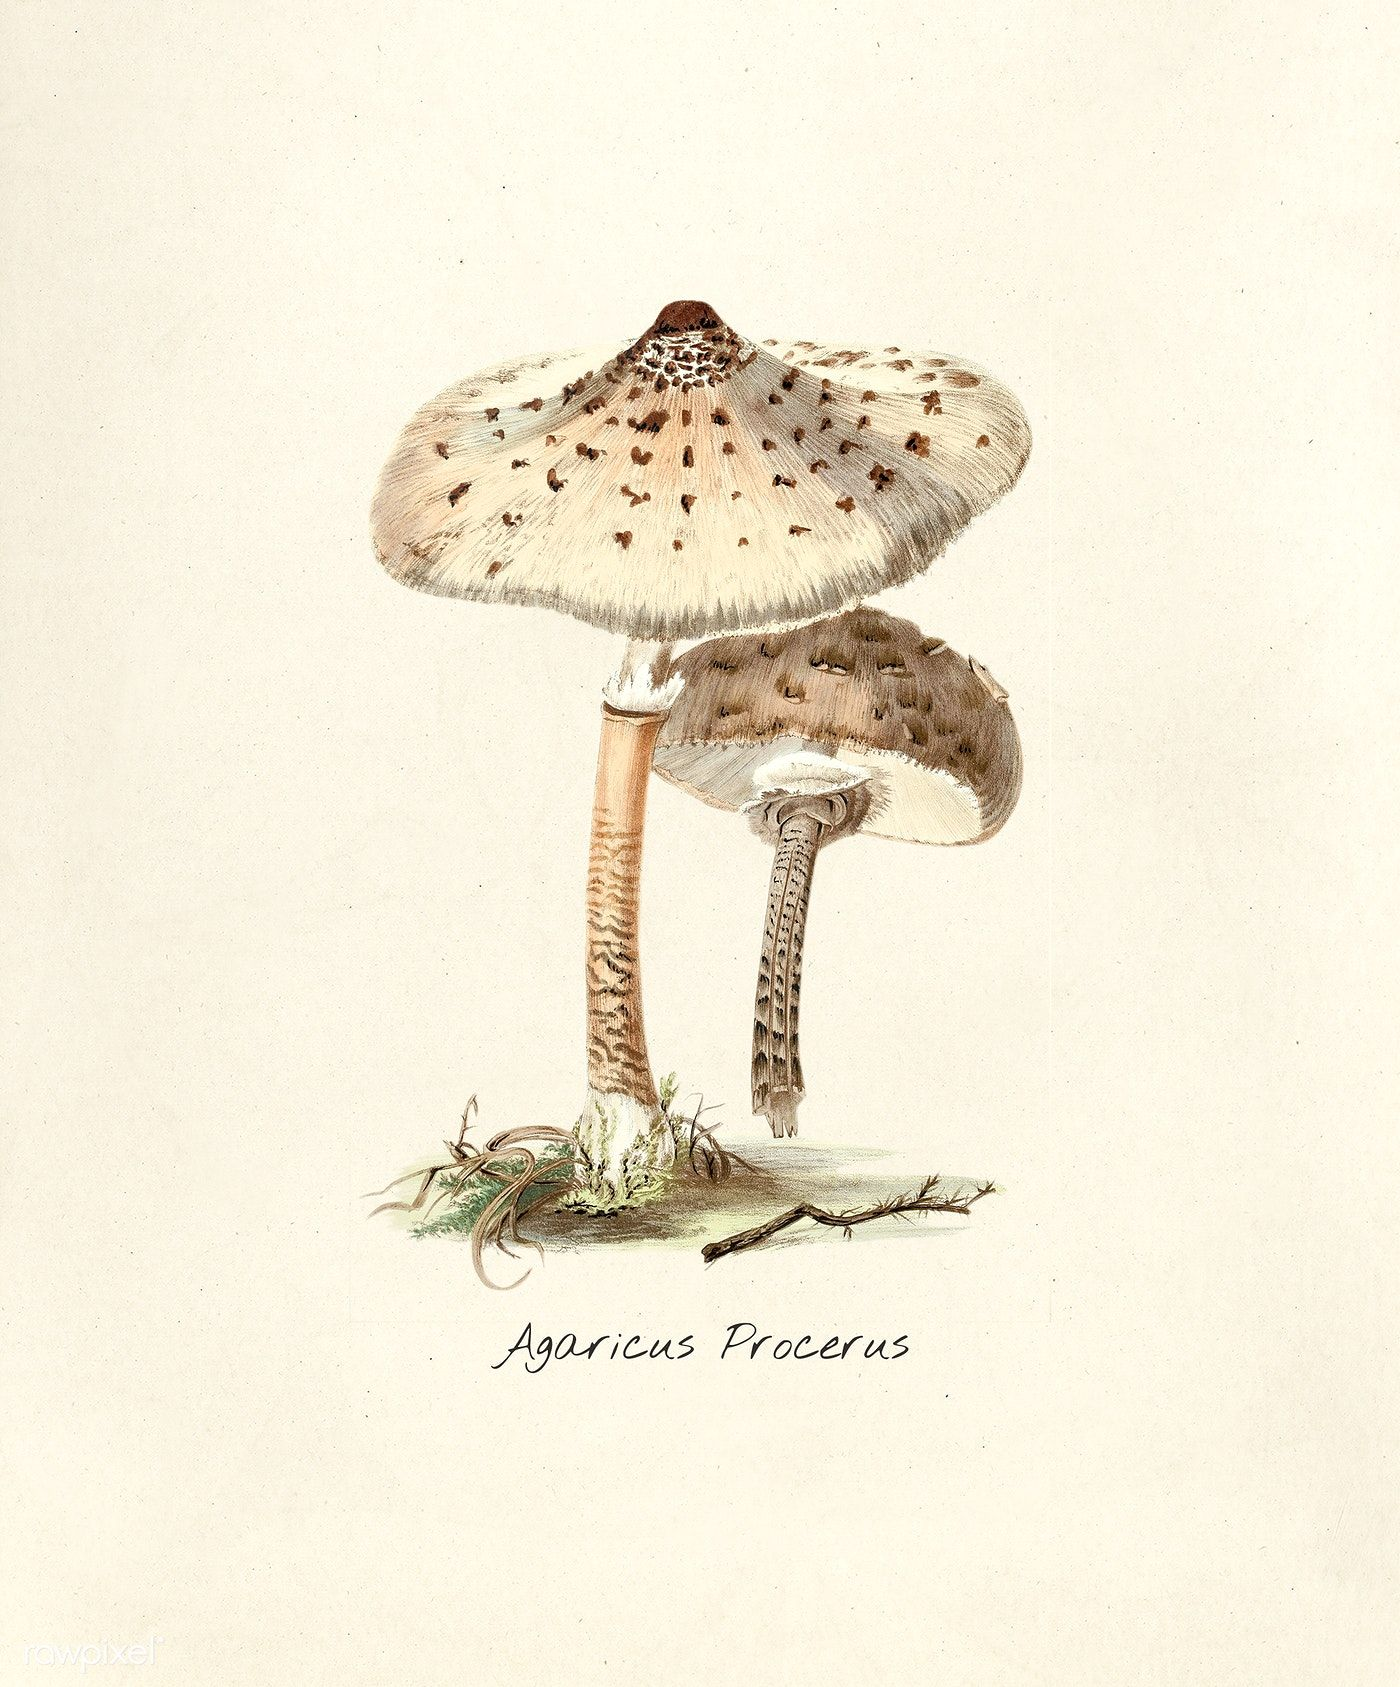 Antique illustration of Agaricus Procerus | free image by ...